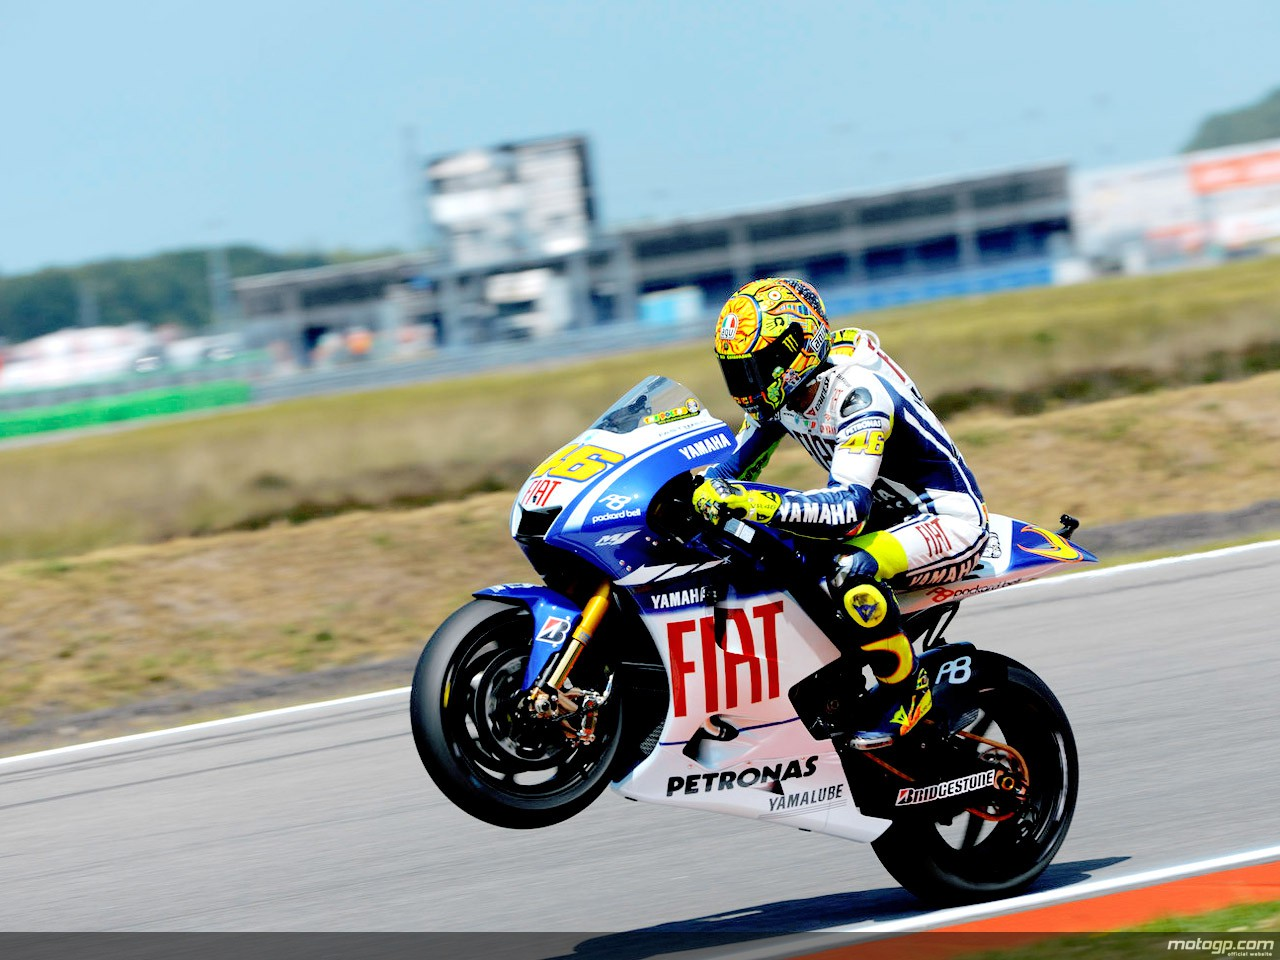 valentino rossi ndash wheelie - photo #38